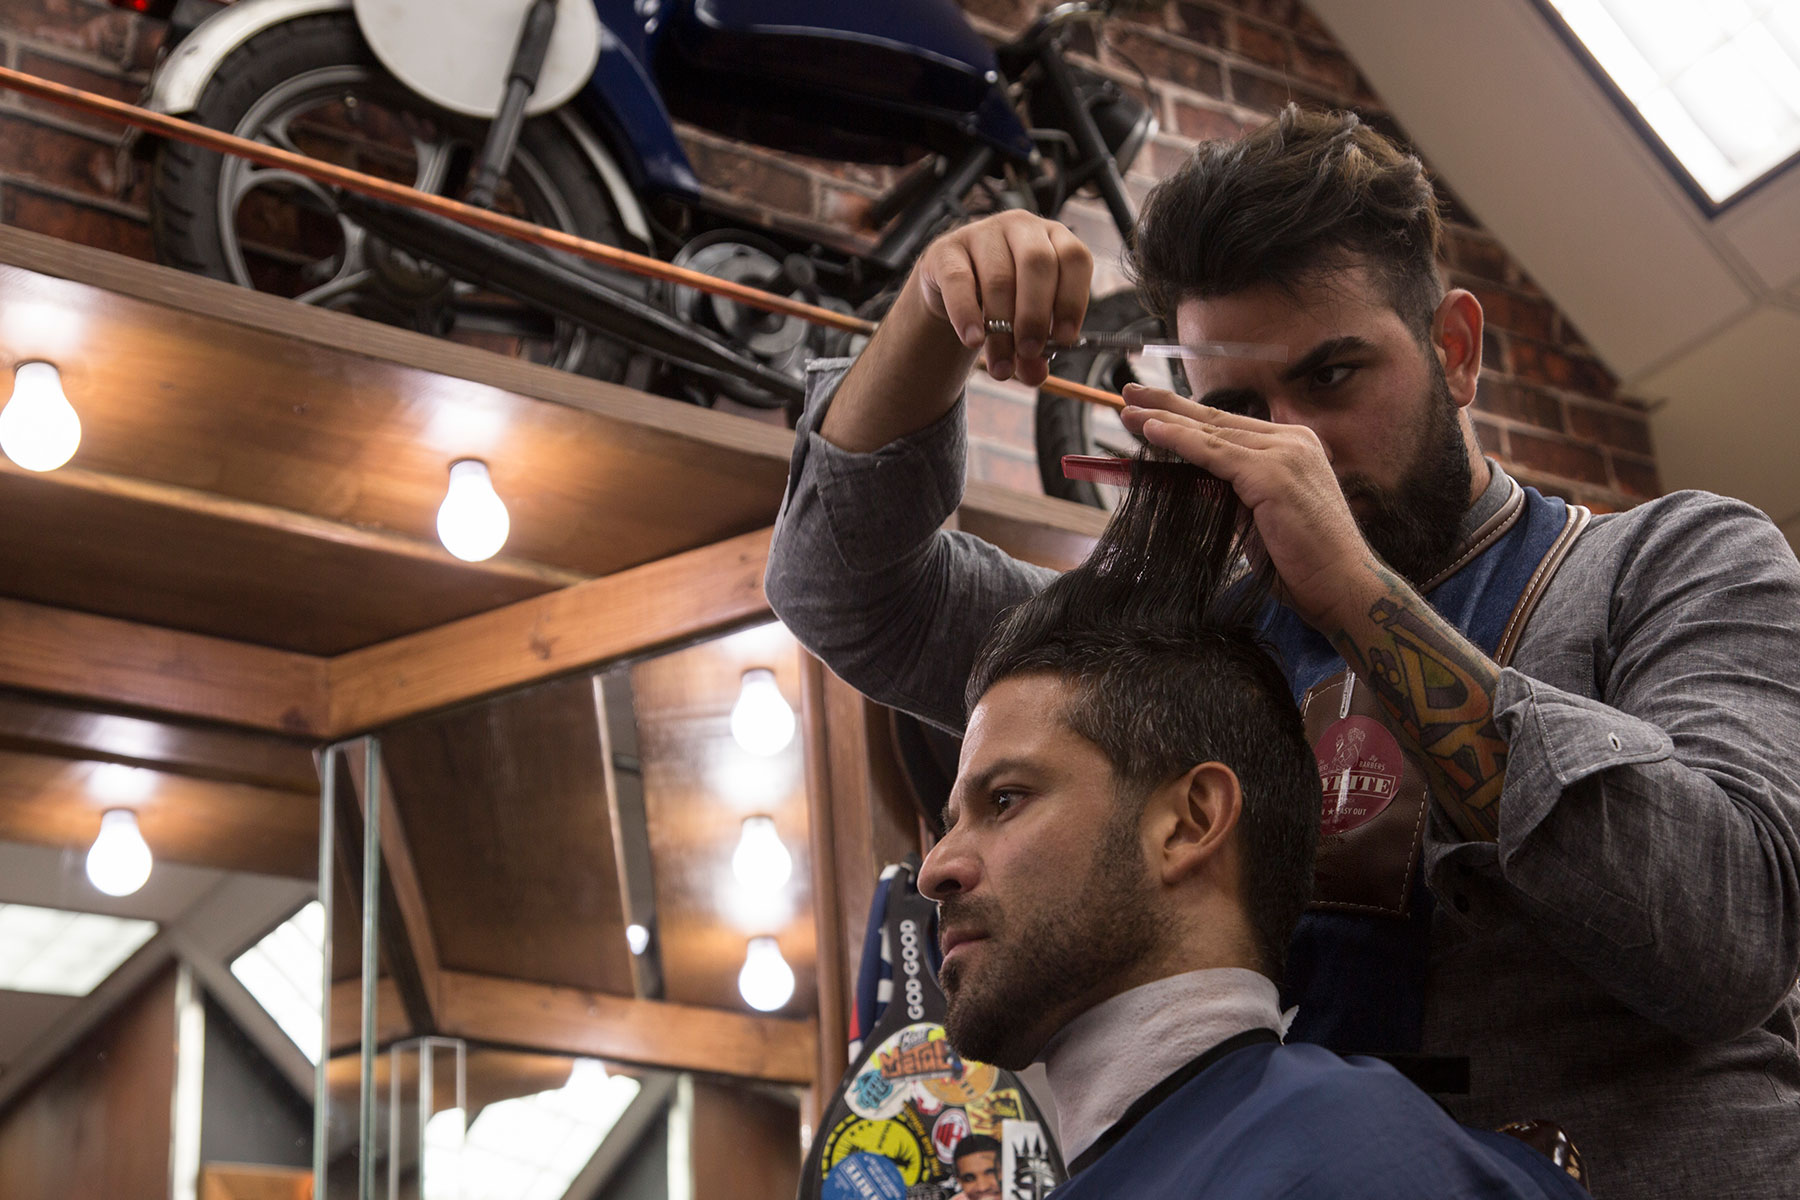 Classic barbershop in a vintage setting